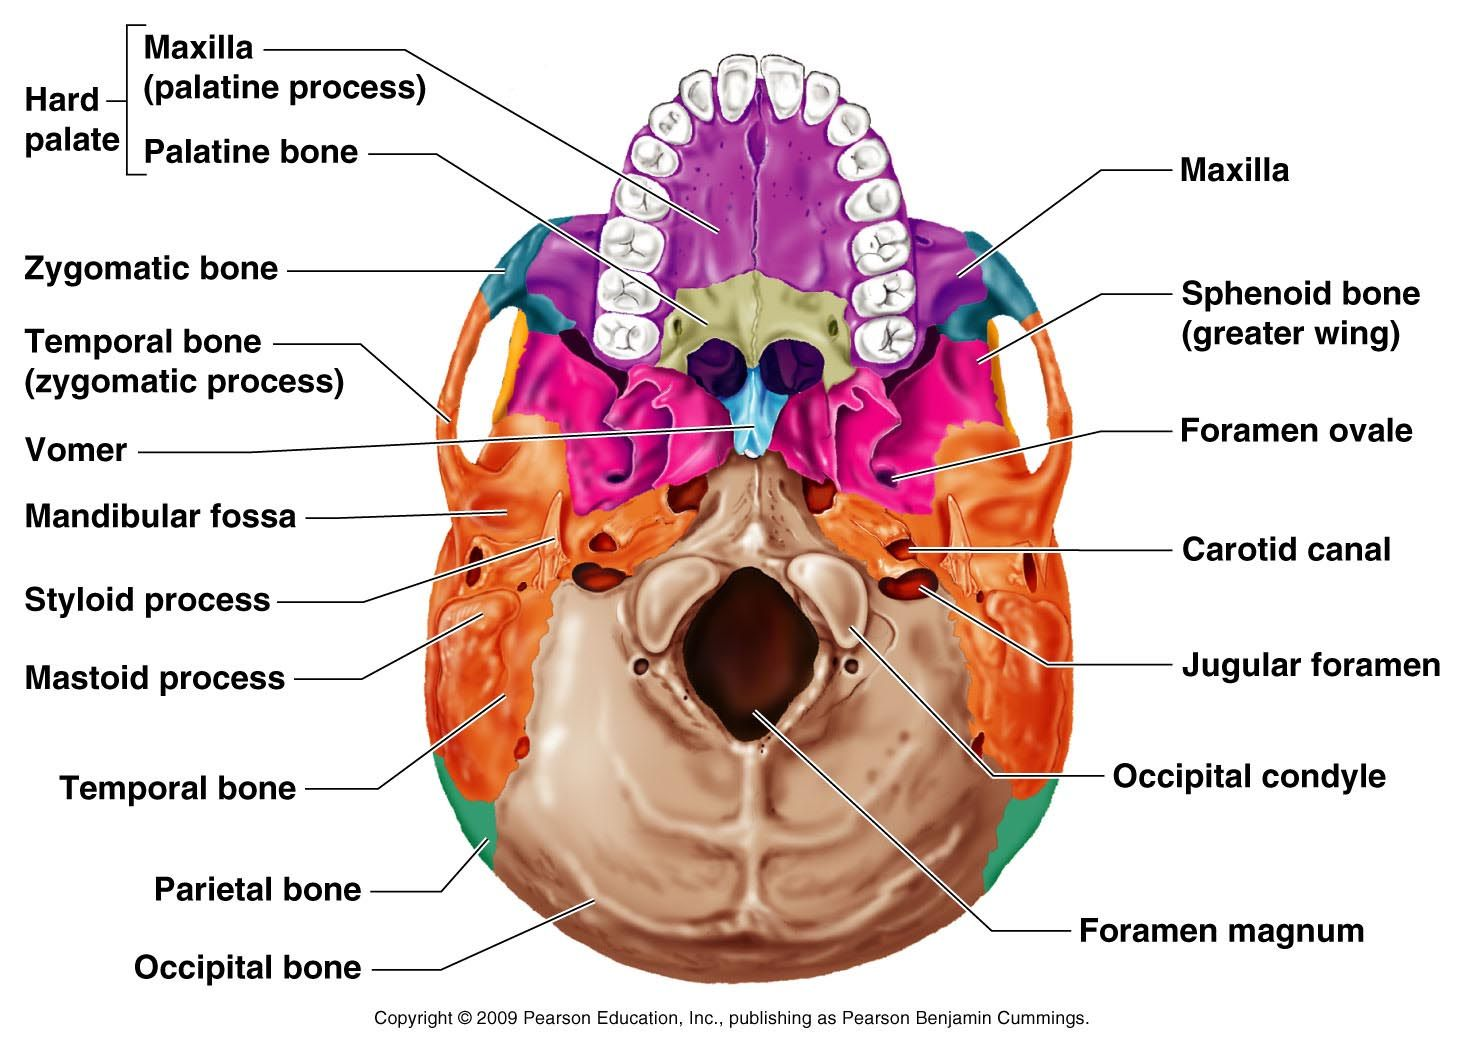 Occipital Bone Contains The Foramen Magnum Where The Spinal Cord